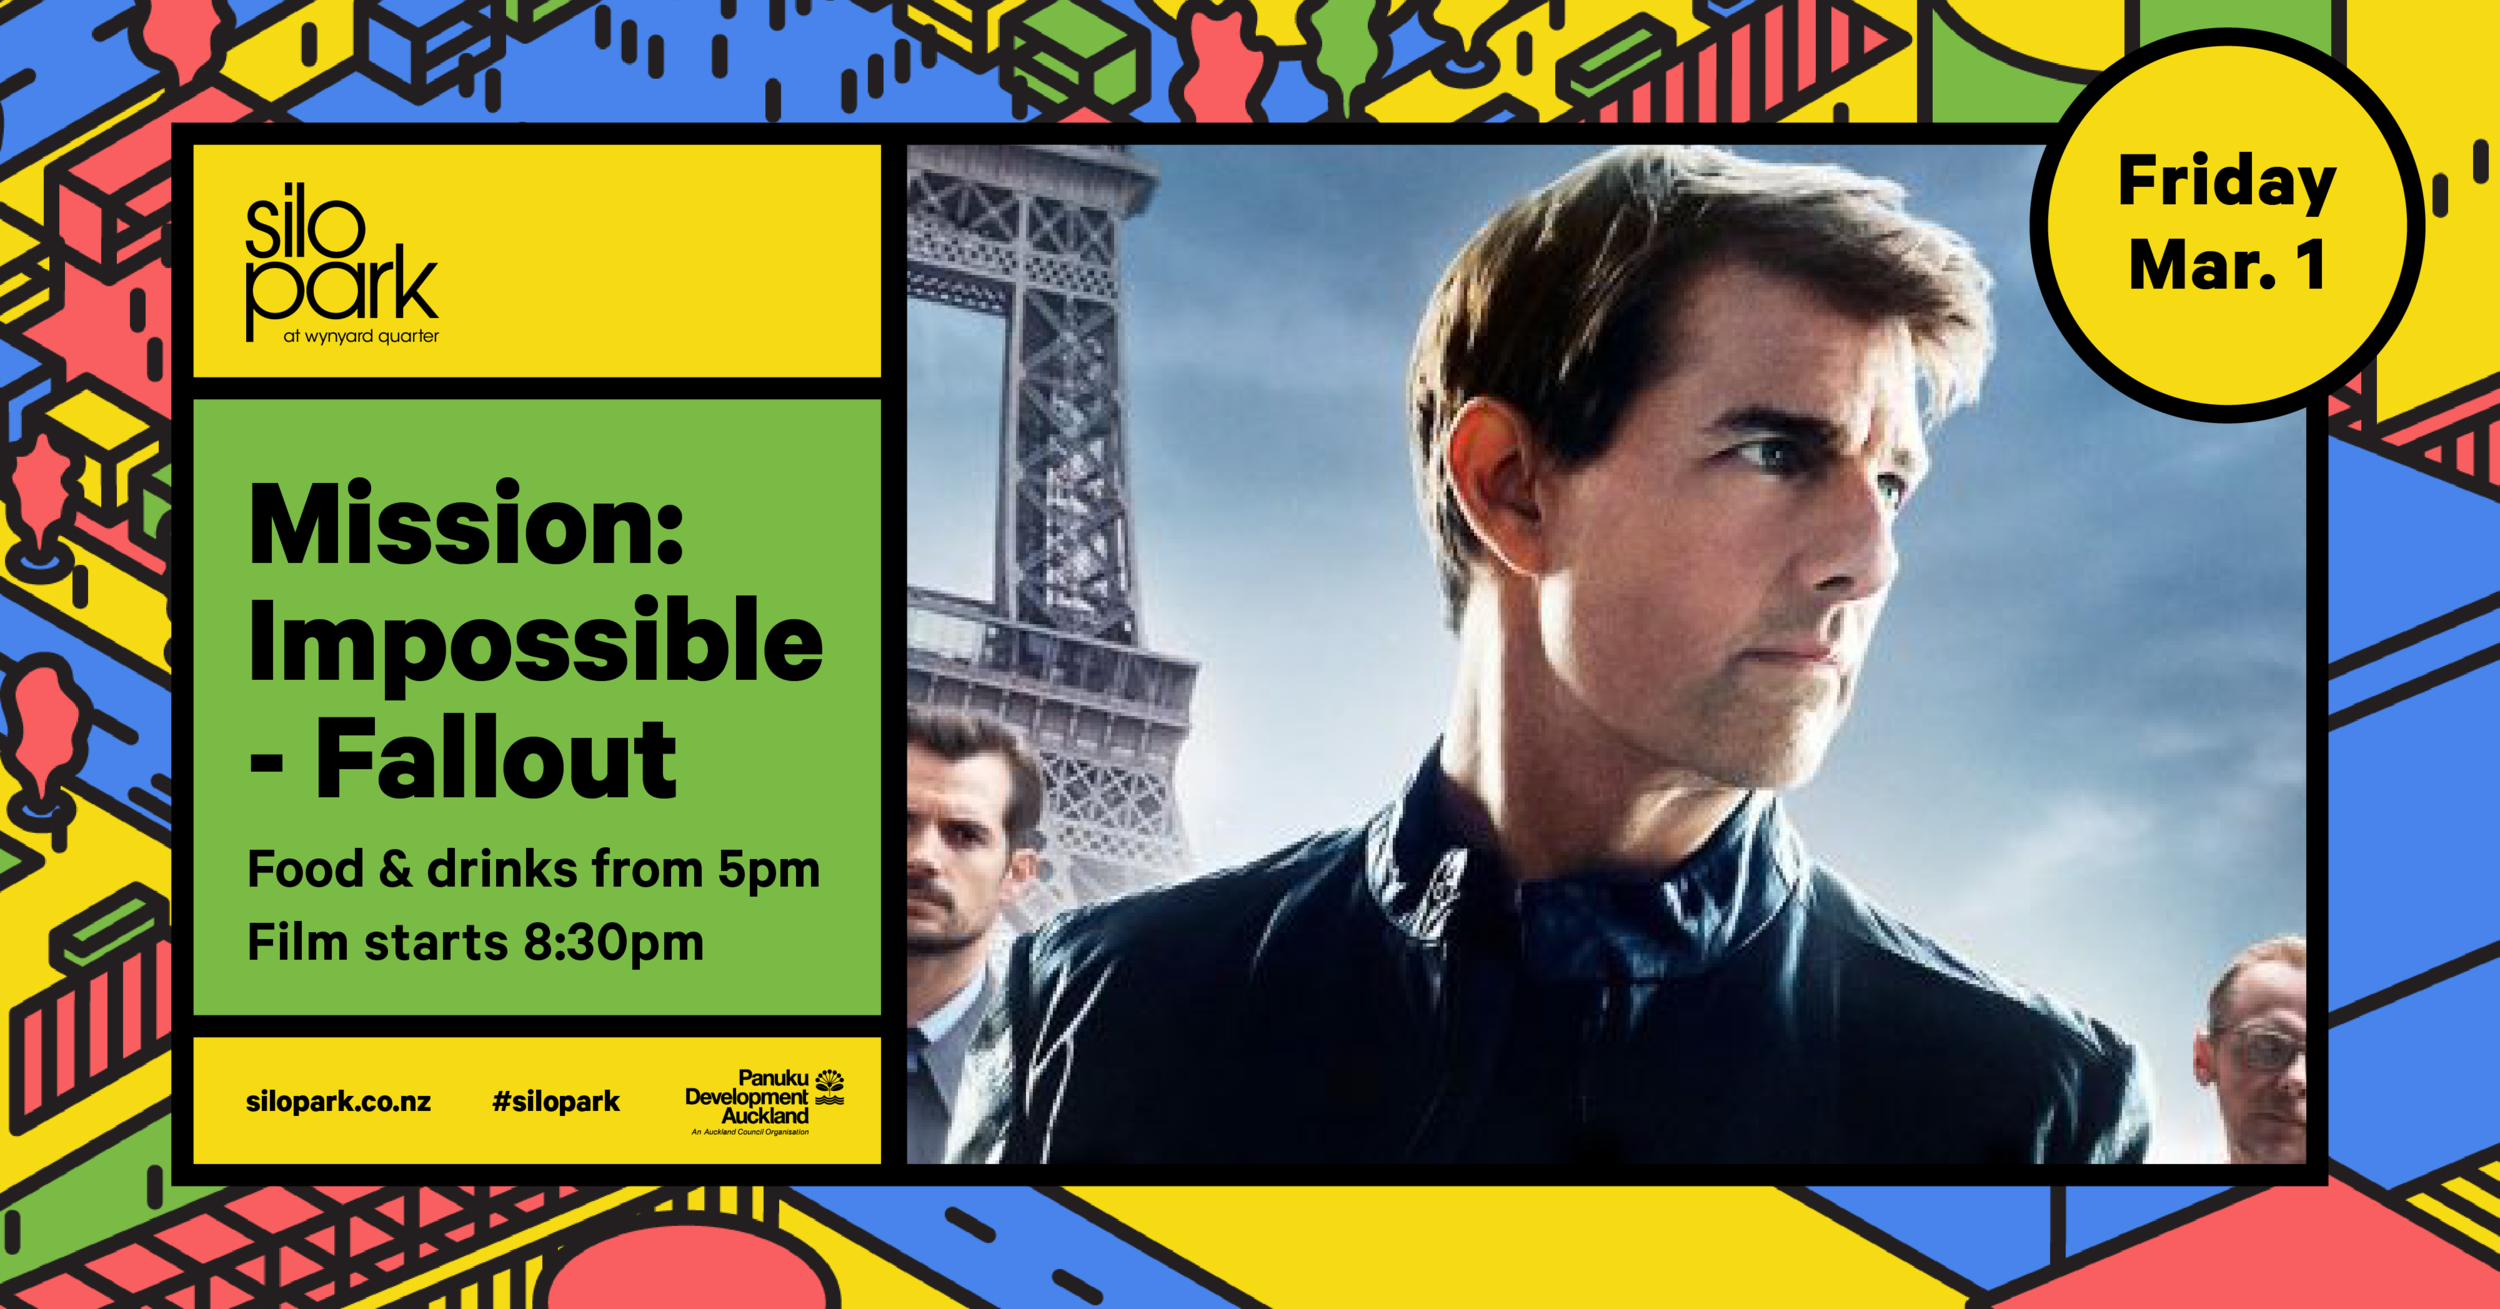 mission impossible website_FB event cover copy 9.png